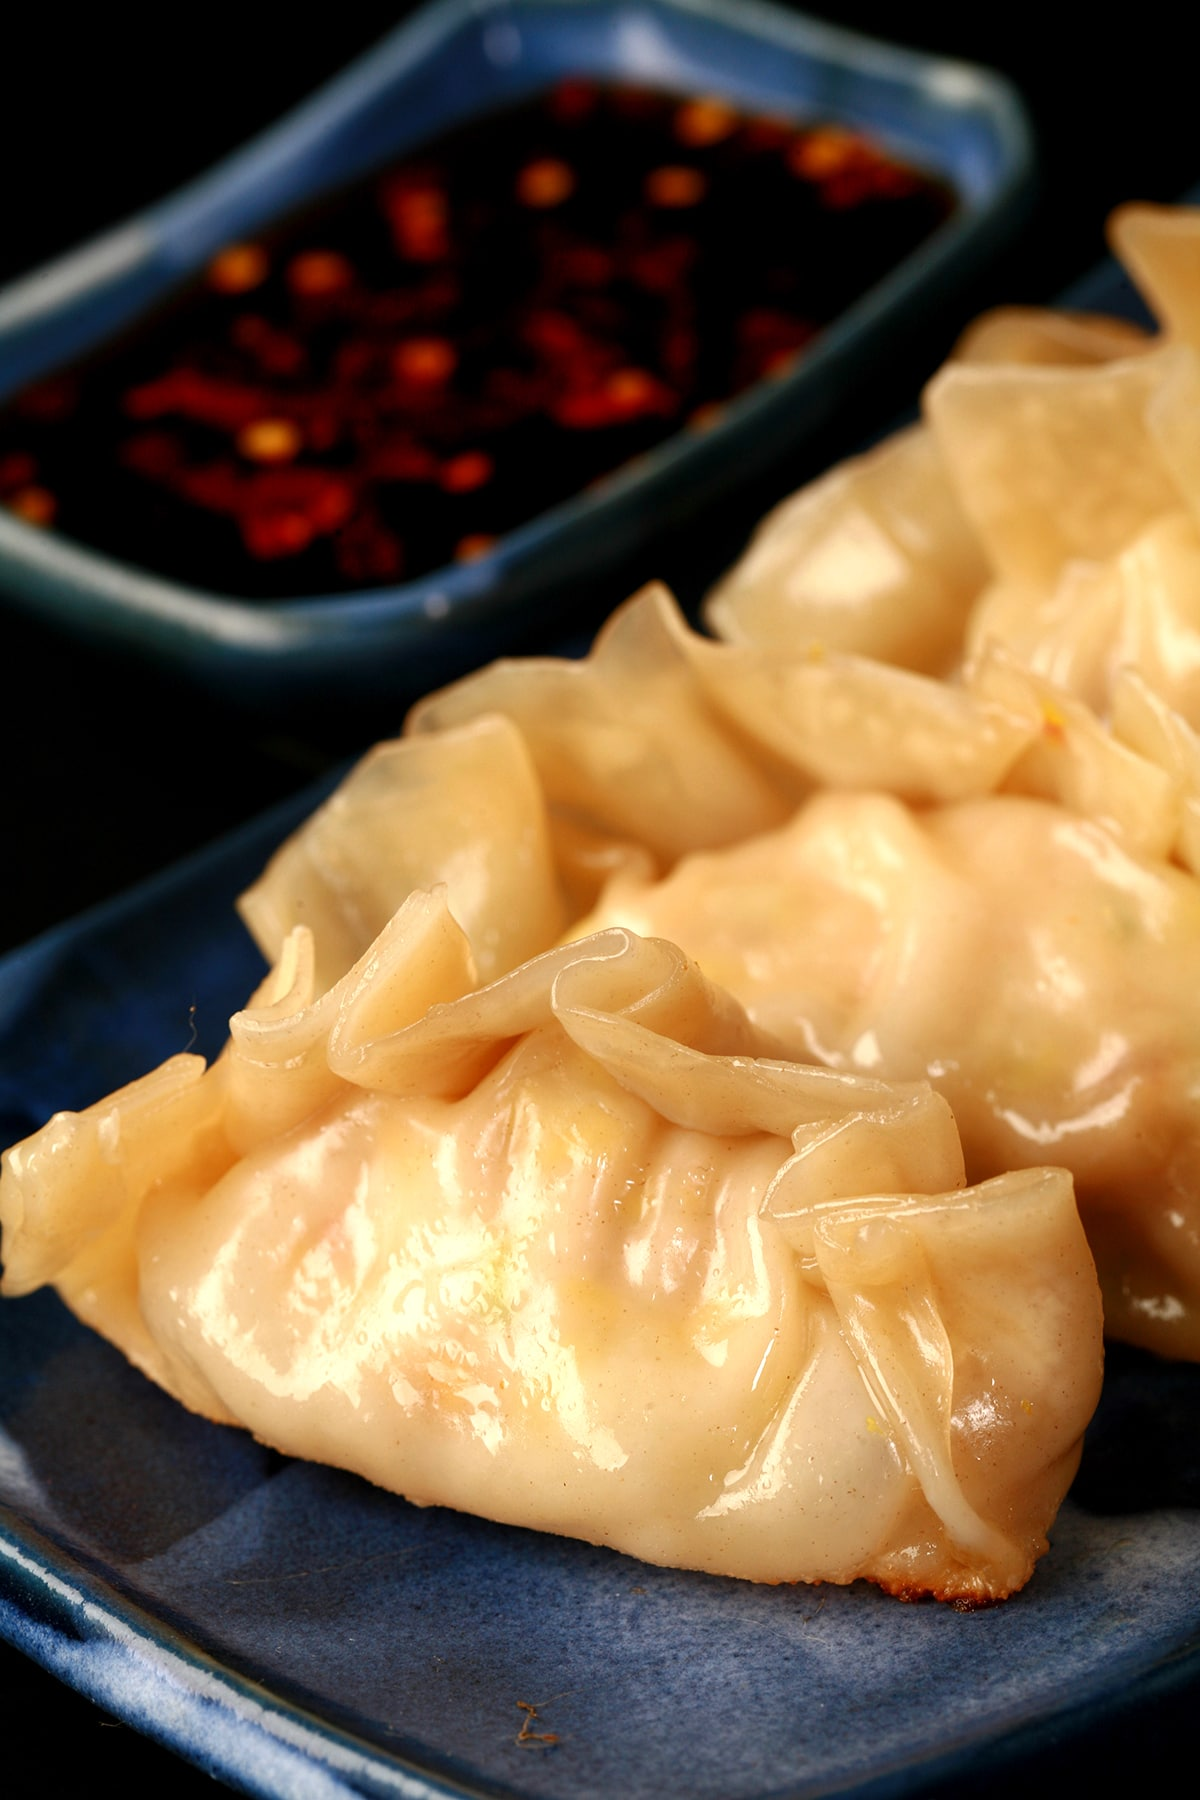 4 homemade gyoza on a blue rectangular plate, with a small dish of gyoza sauce next to it.